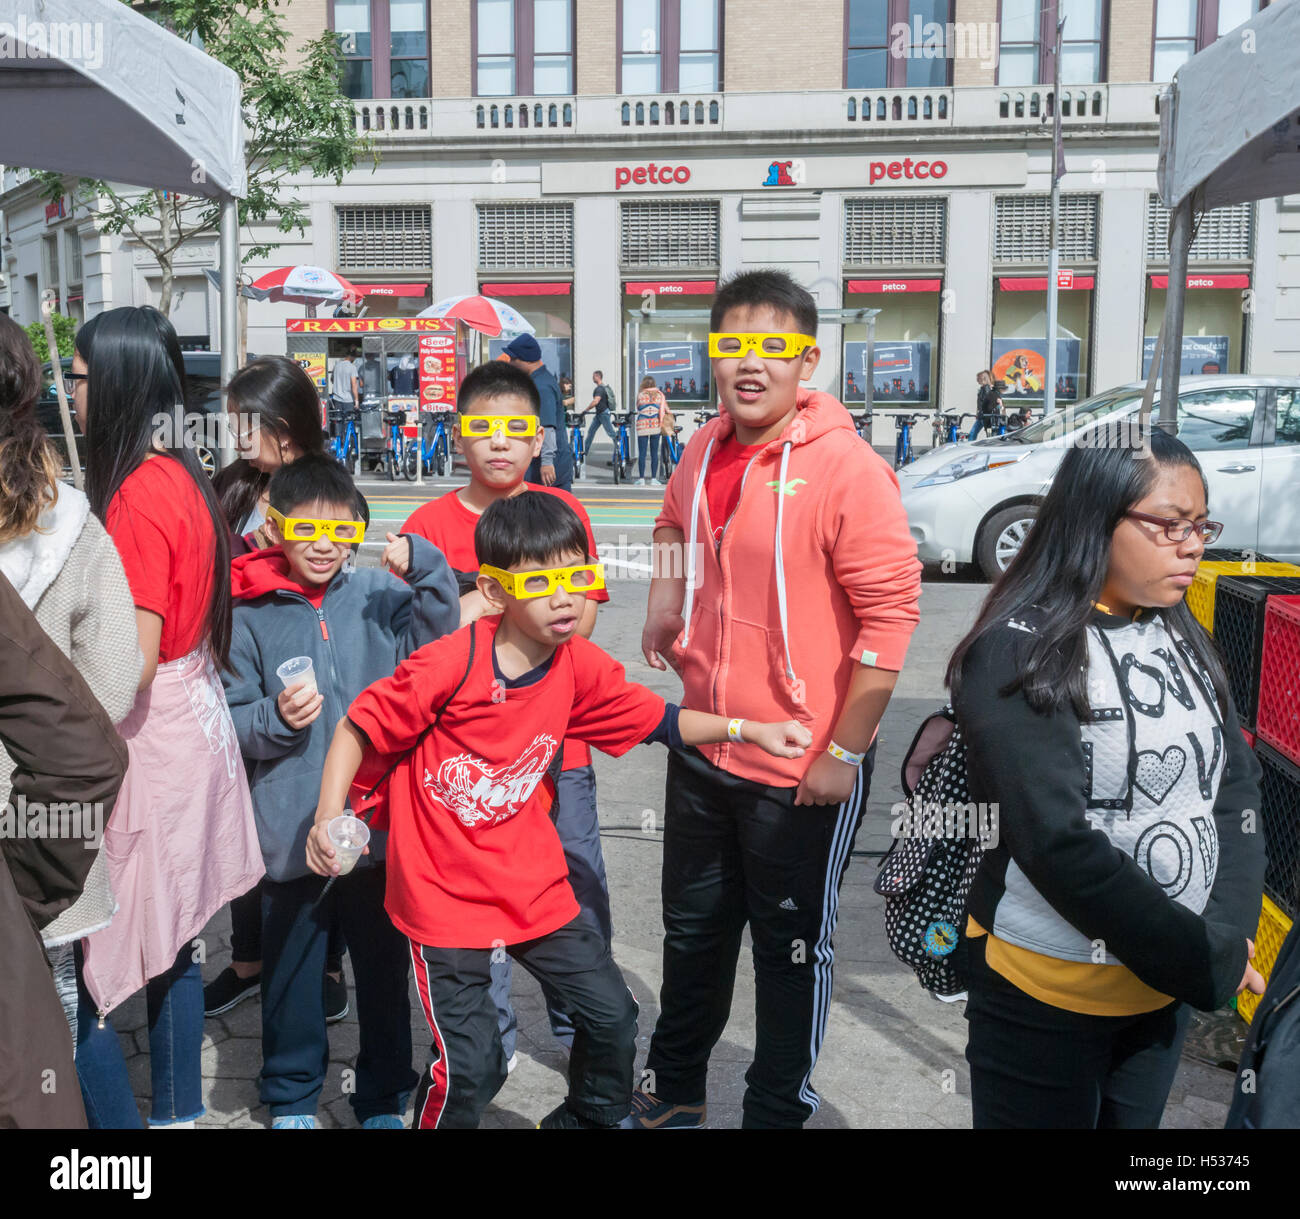 Participants wearing diffraction glasses in the Geek Street Fair in Union Square Park in New York on Thursday, October - Stock Image